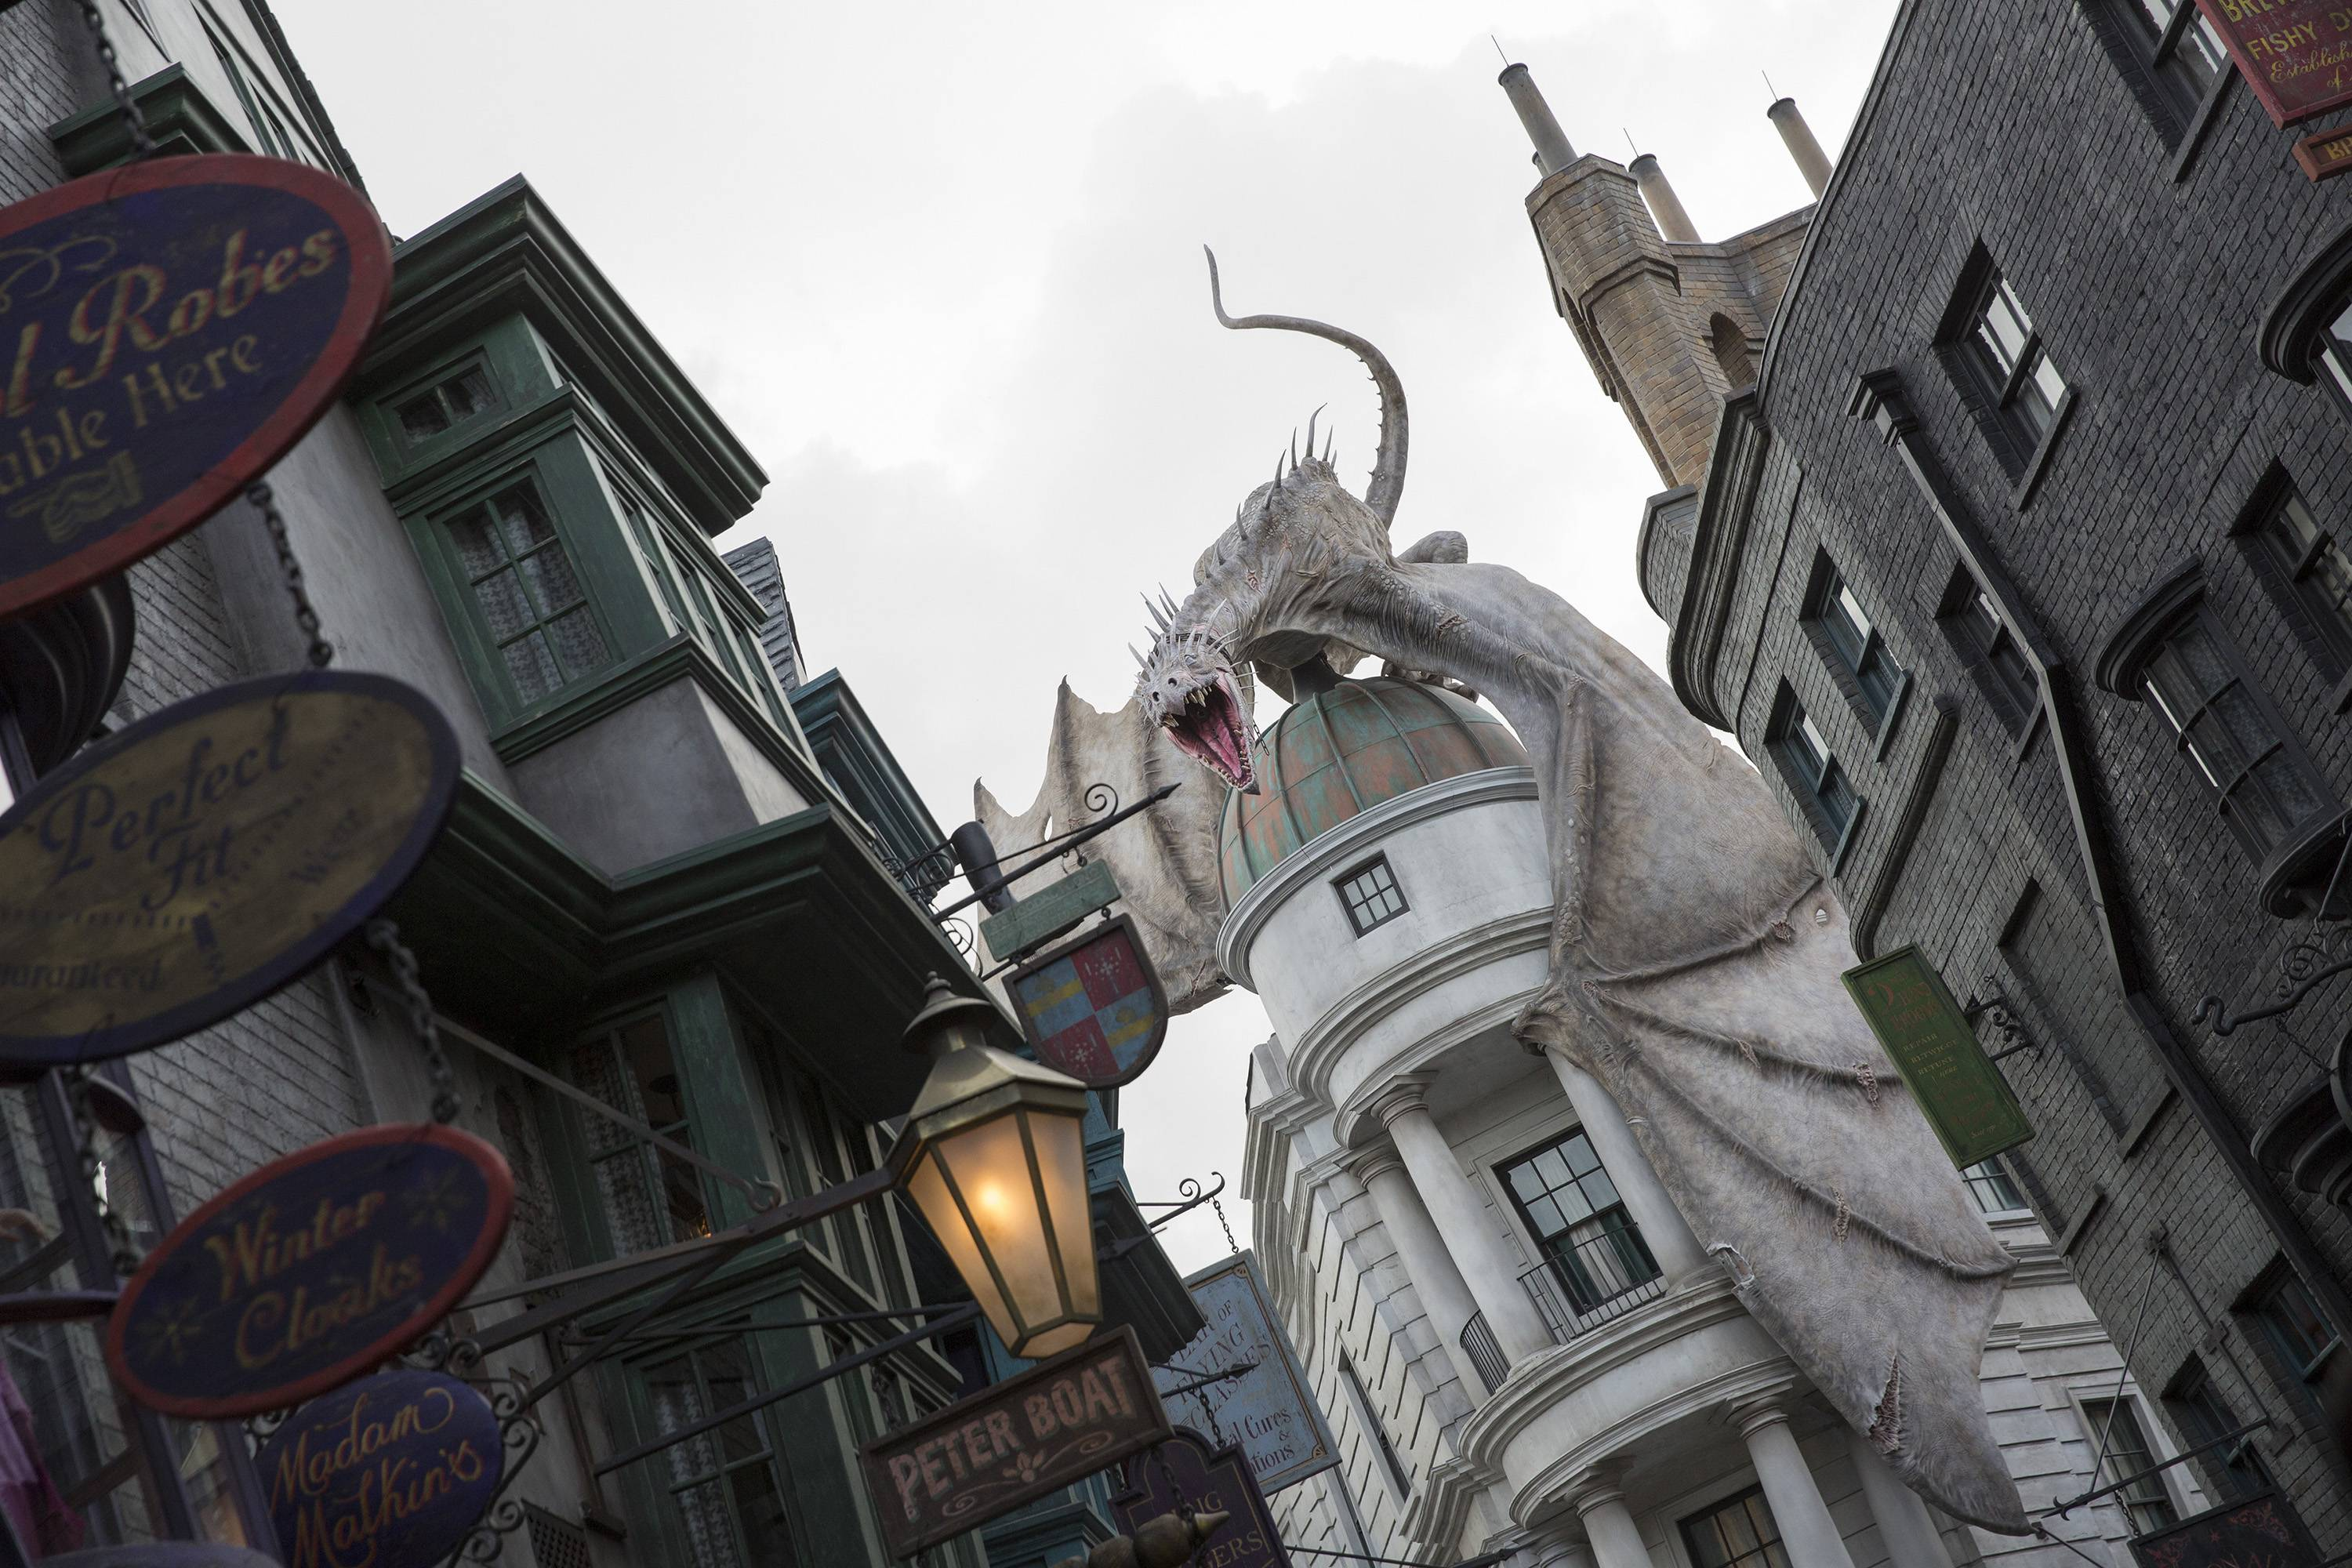 The new Wizarding World of Harry Potter — Diagon Alley at Universal Orlando features shops, dining experiences and a next generation thrill ride. It will officially open on July 8.